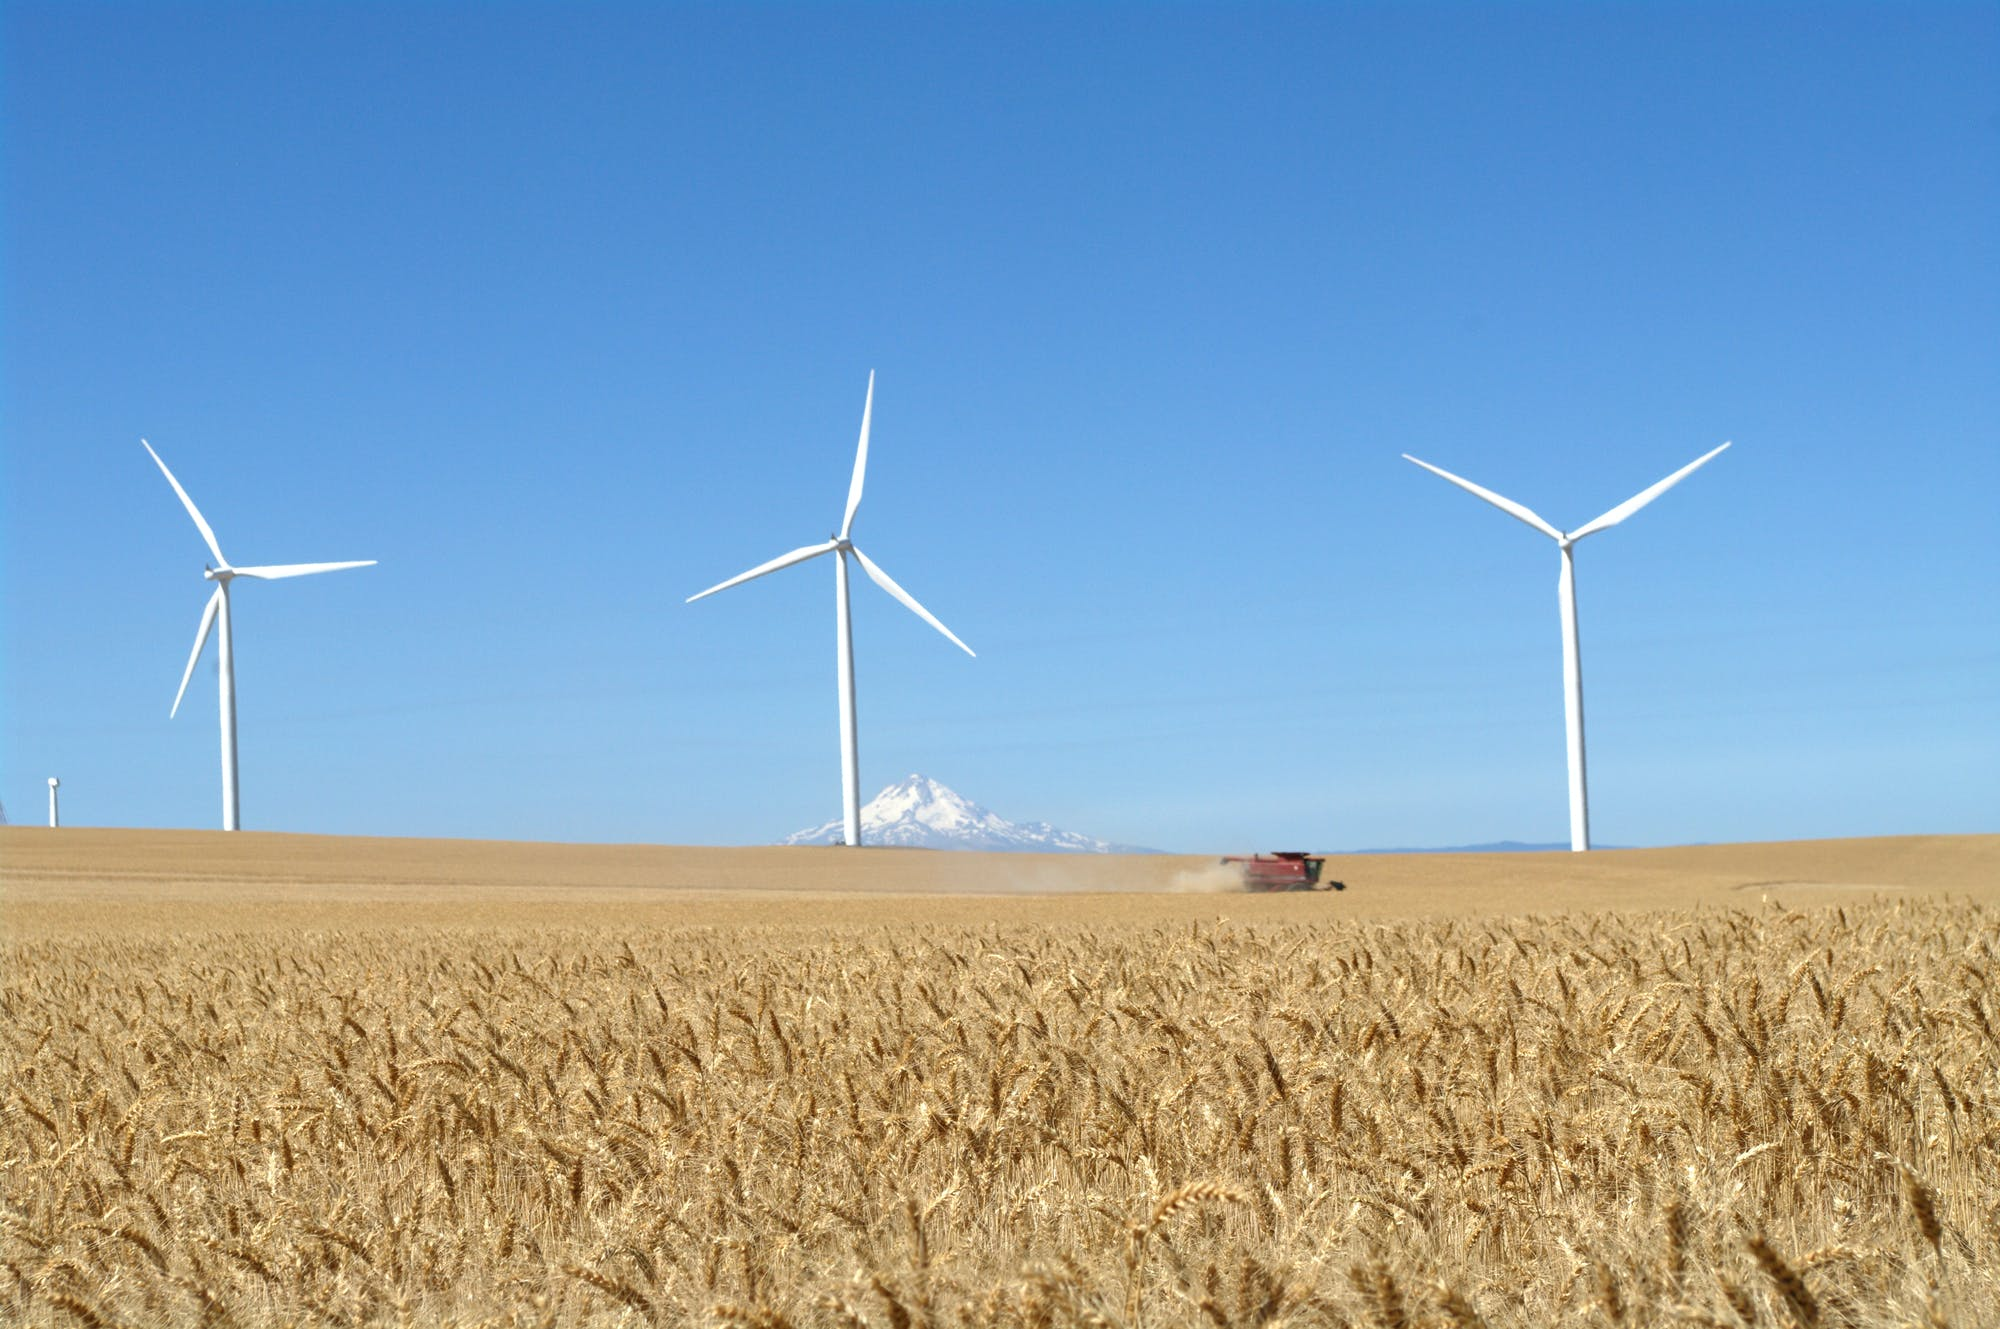 Picture windmills on a field